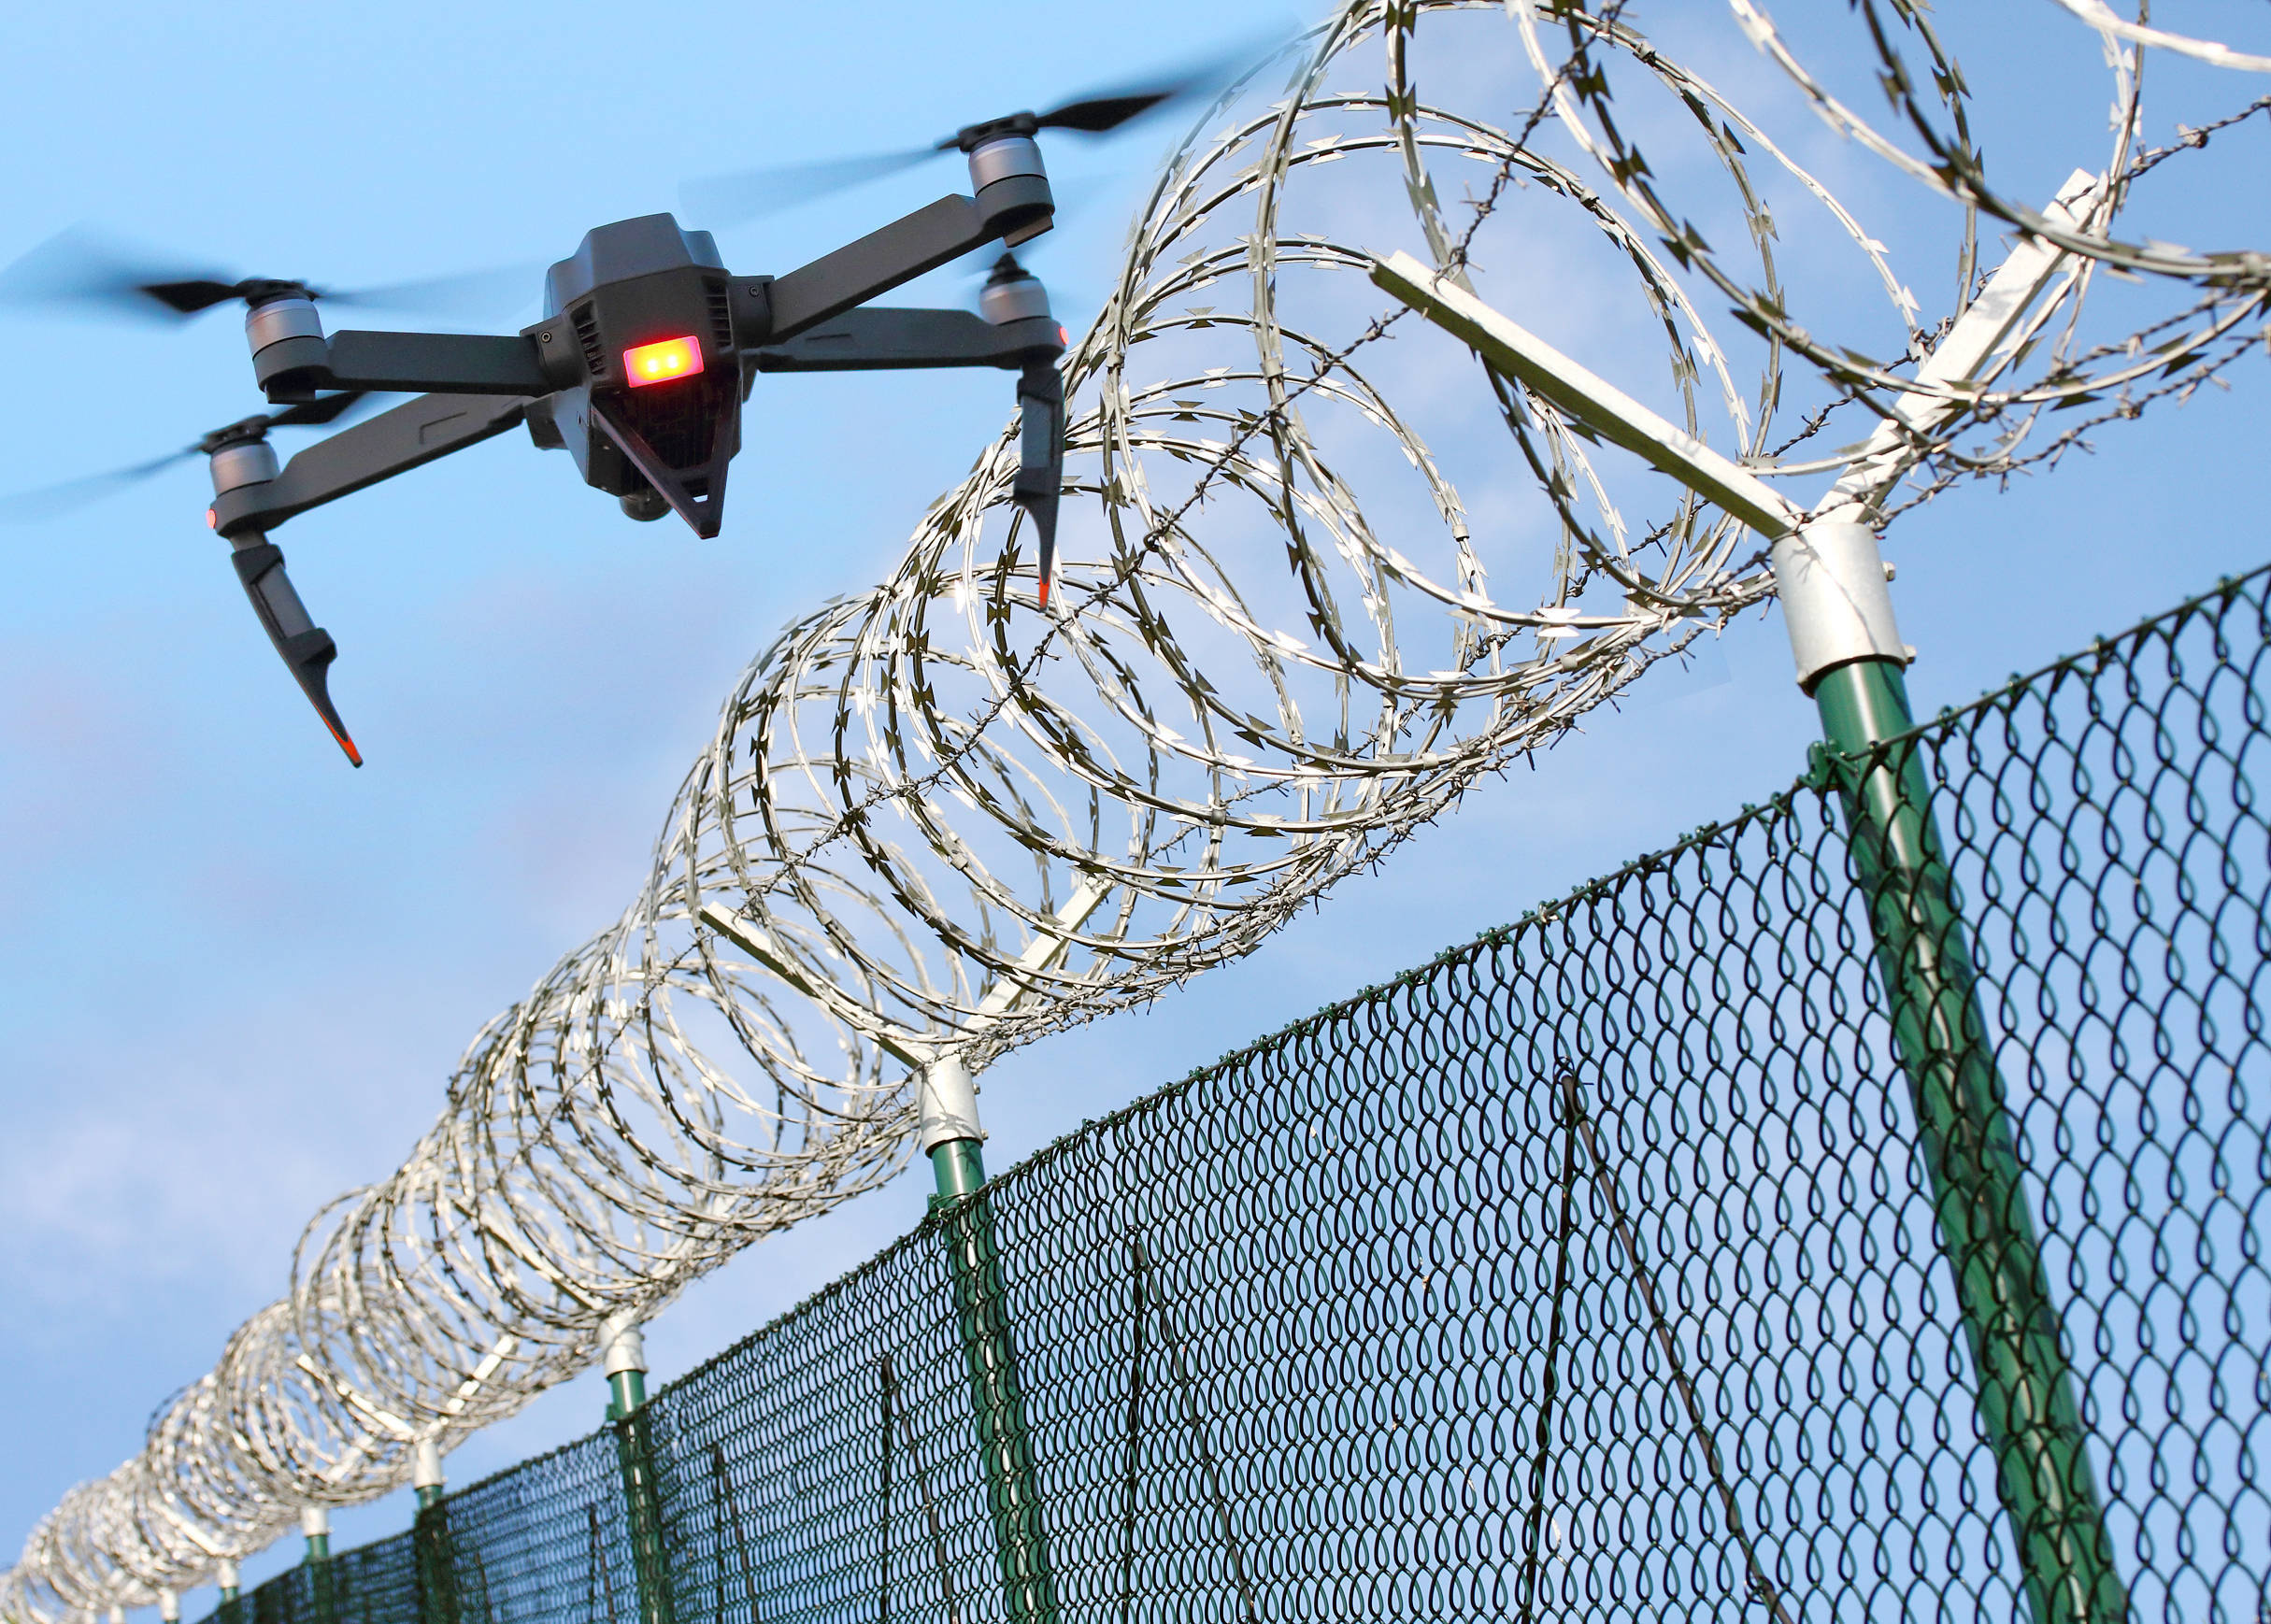 shutterstock_790134829 Prison fence with drone.jpg